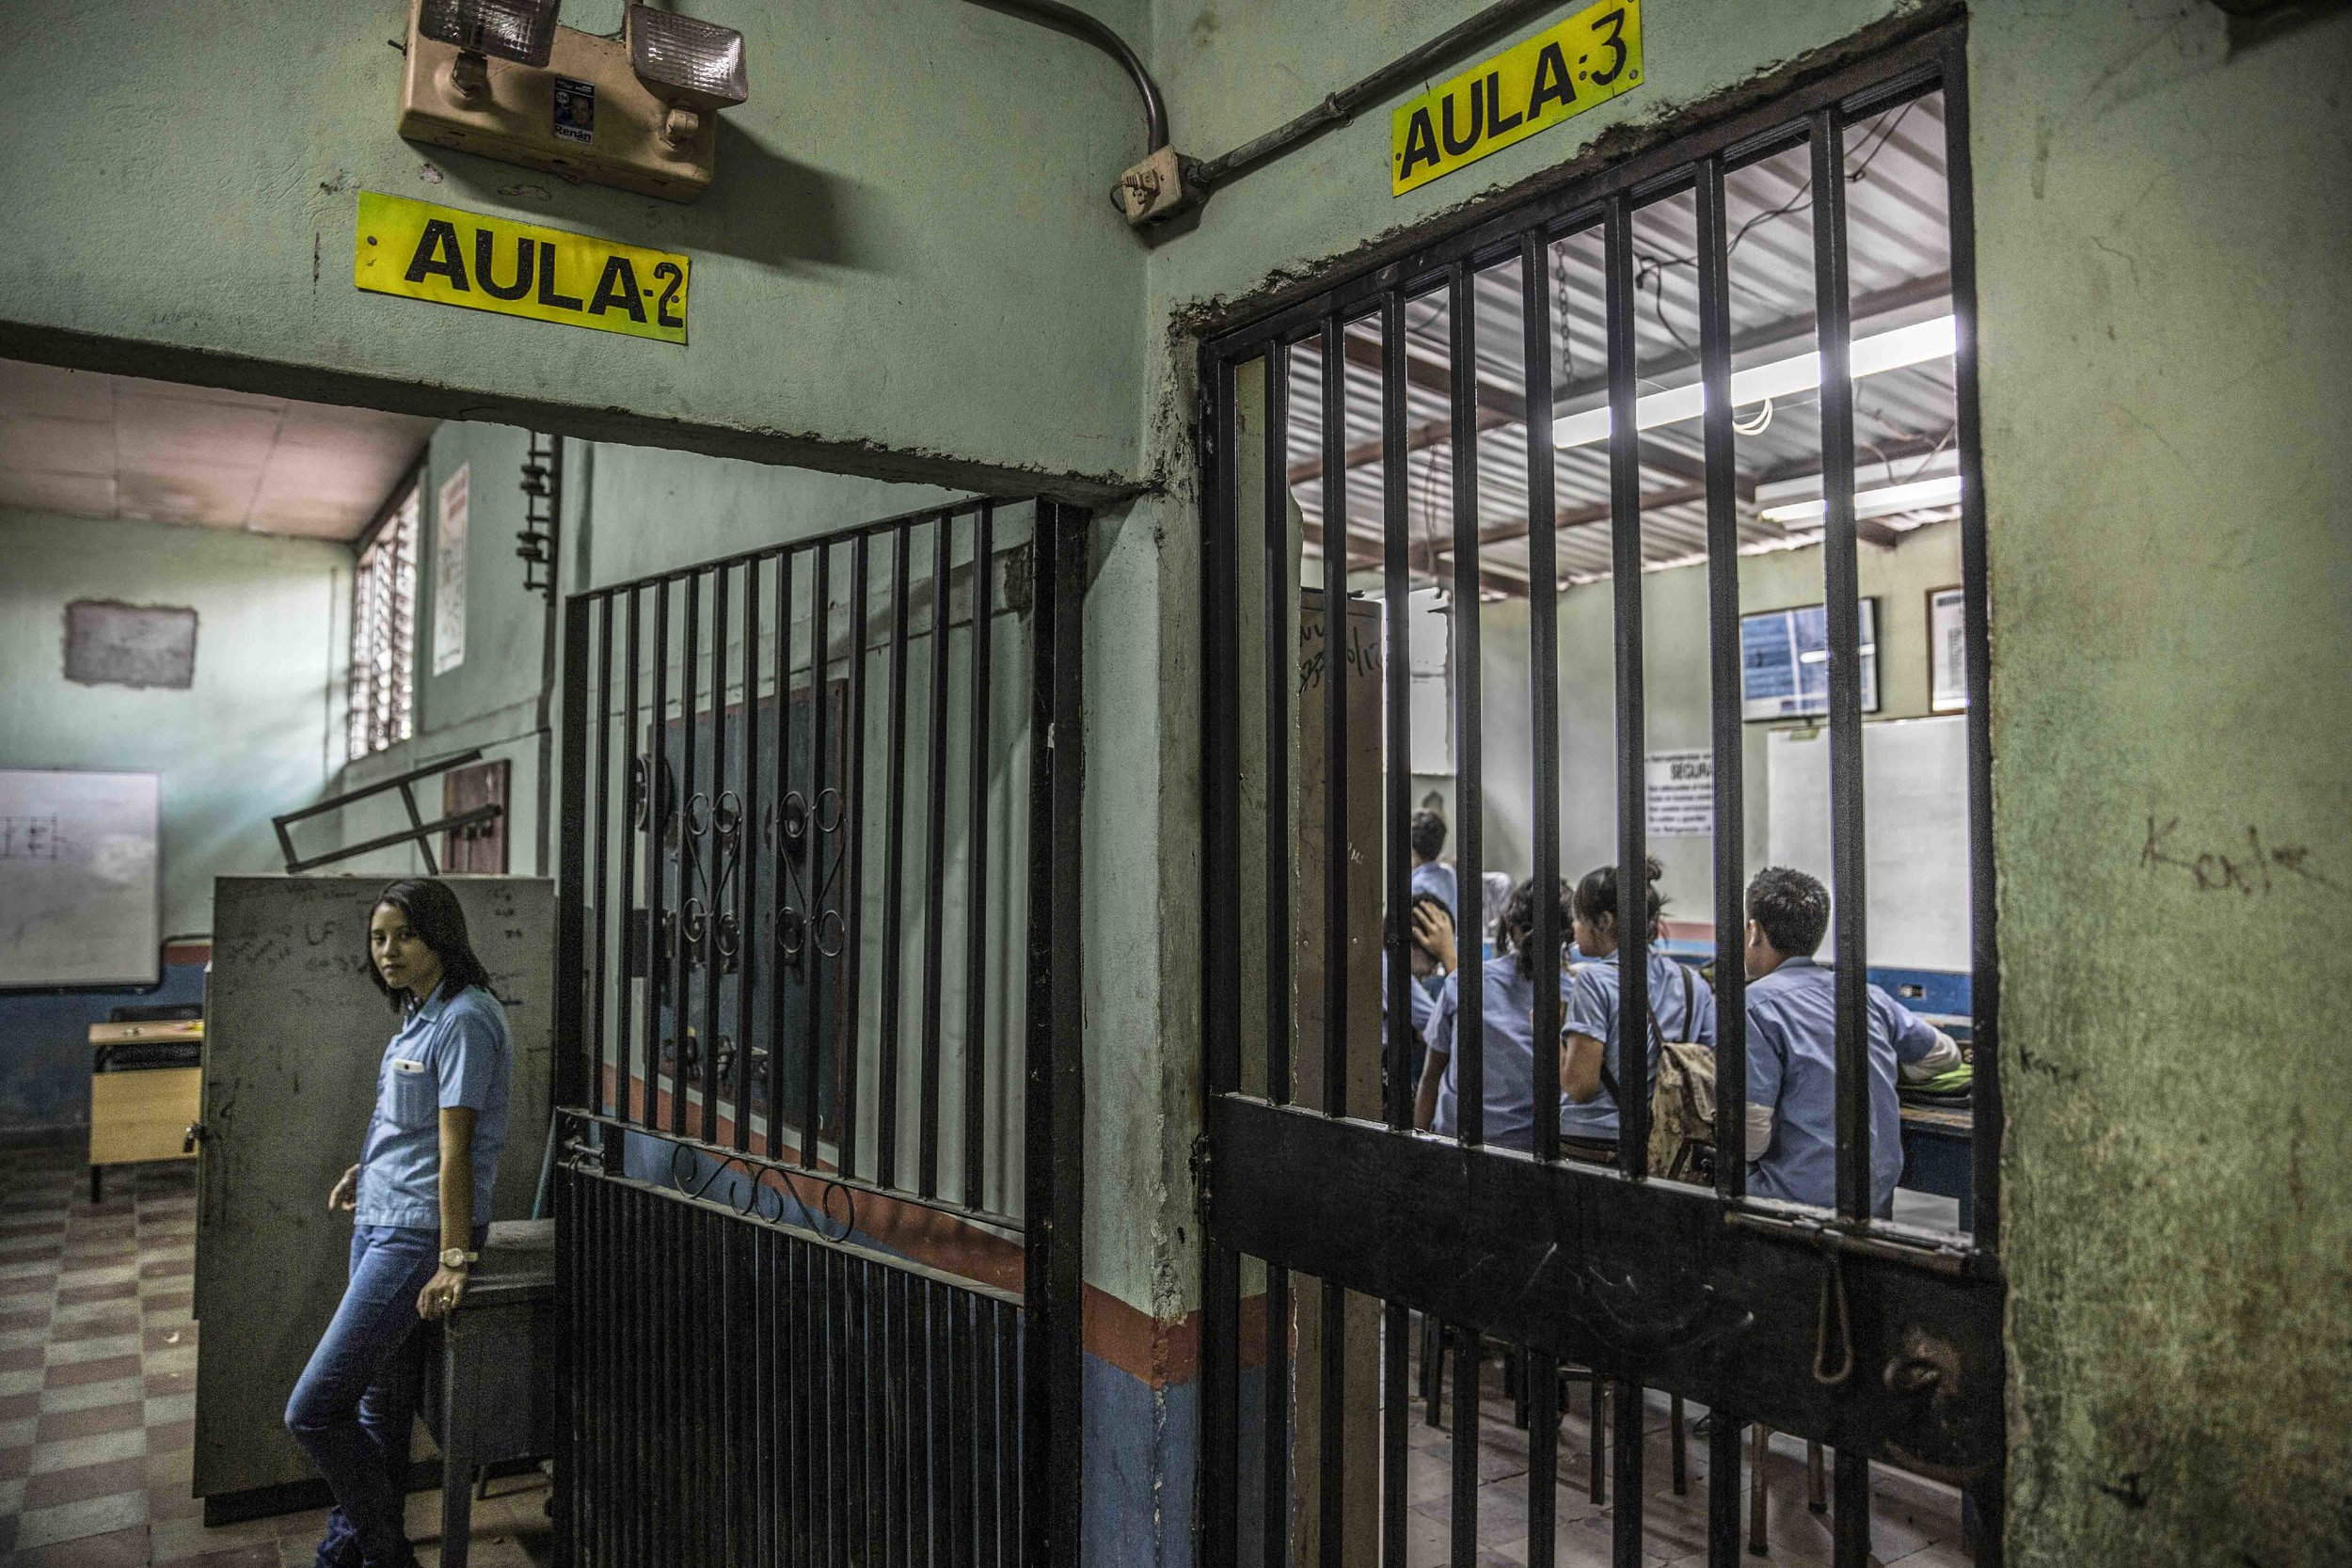 The gates as classroom doors in a vocational school of the capital Tegucigalpa. This neighborhood under the control of the 18 Street Gang (M-18). The M-18, it is also known as the army of the children, because of the age of the members, which are often recruited in schools like this one.